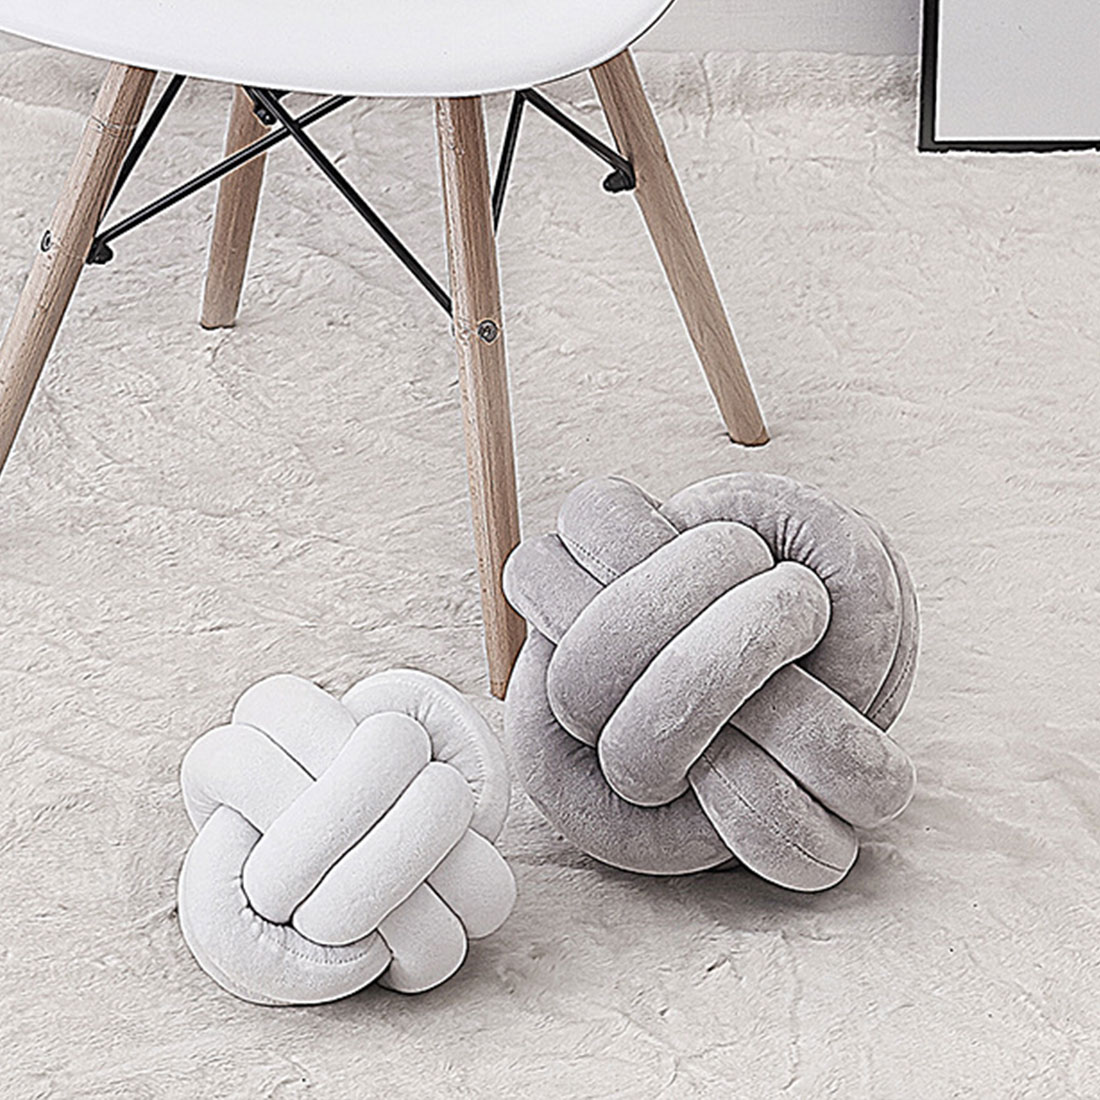 Colorful Warm Nordic Style Pillow Cushion Ball Knot Pillow Solid Color Baby Calm Sleep Dolls Stuffed Kid Adult Bedroom Decor